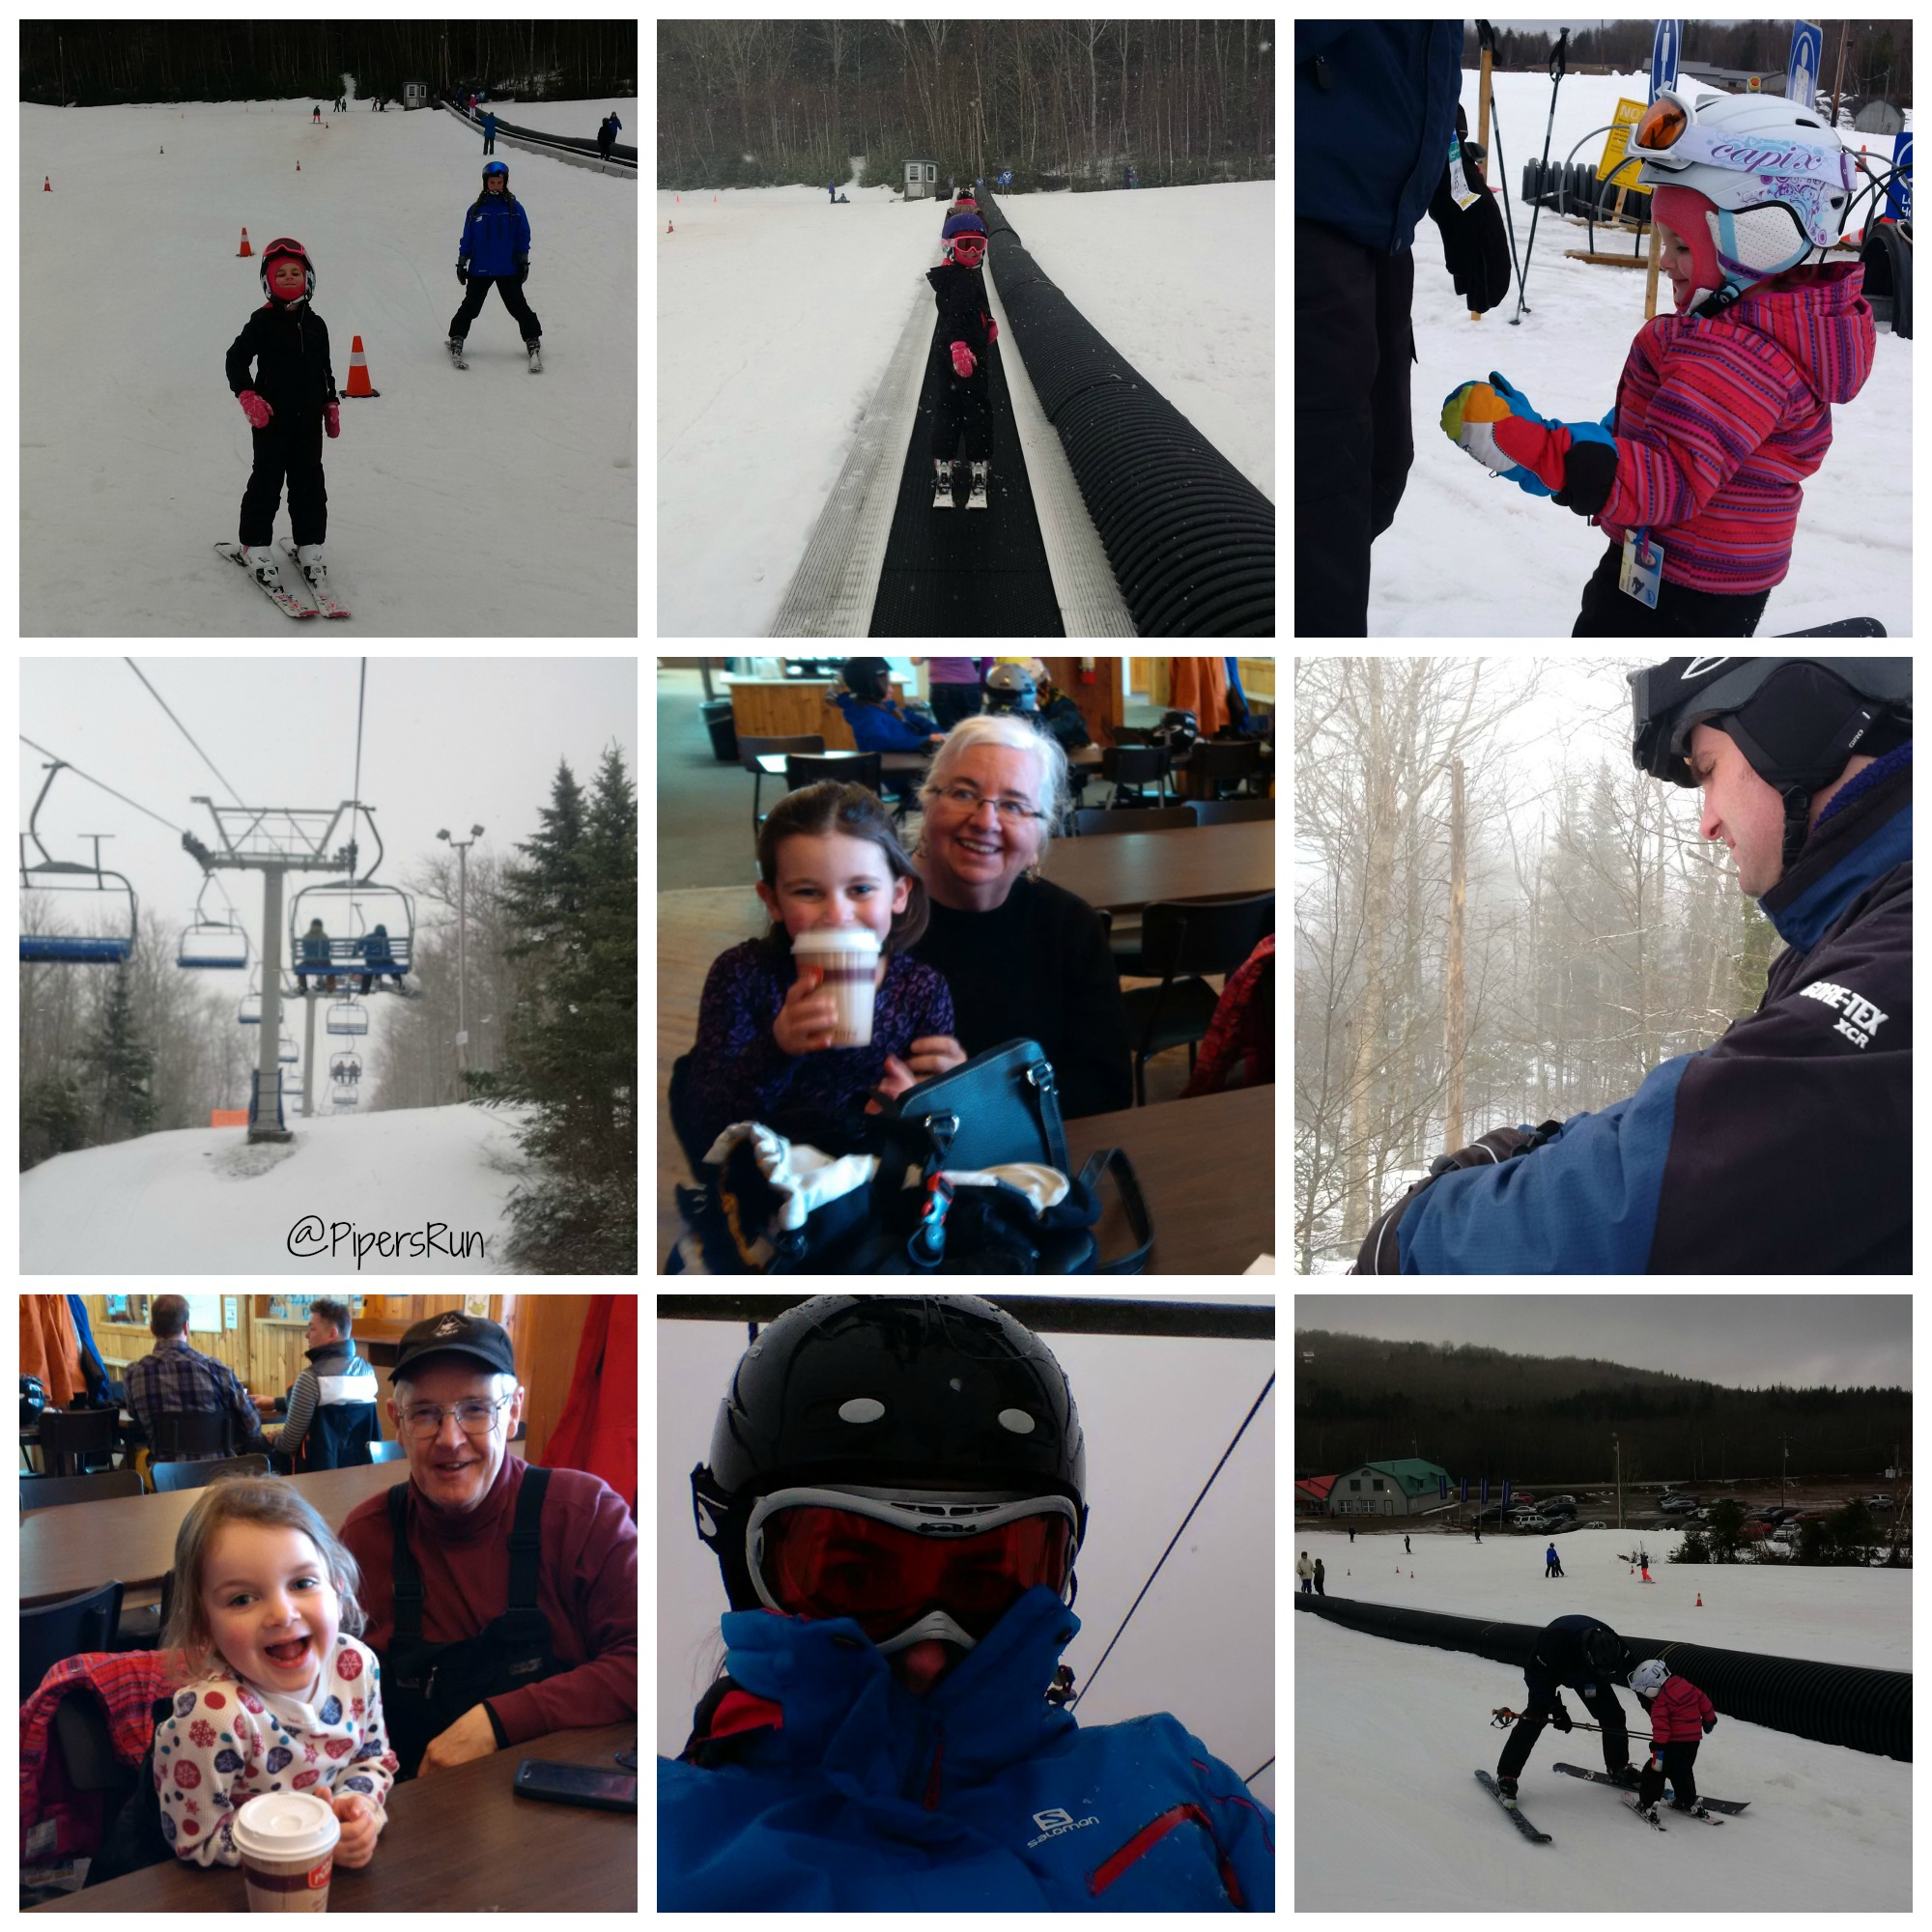 March Break ski trip PR